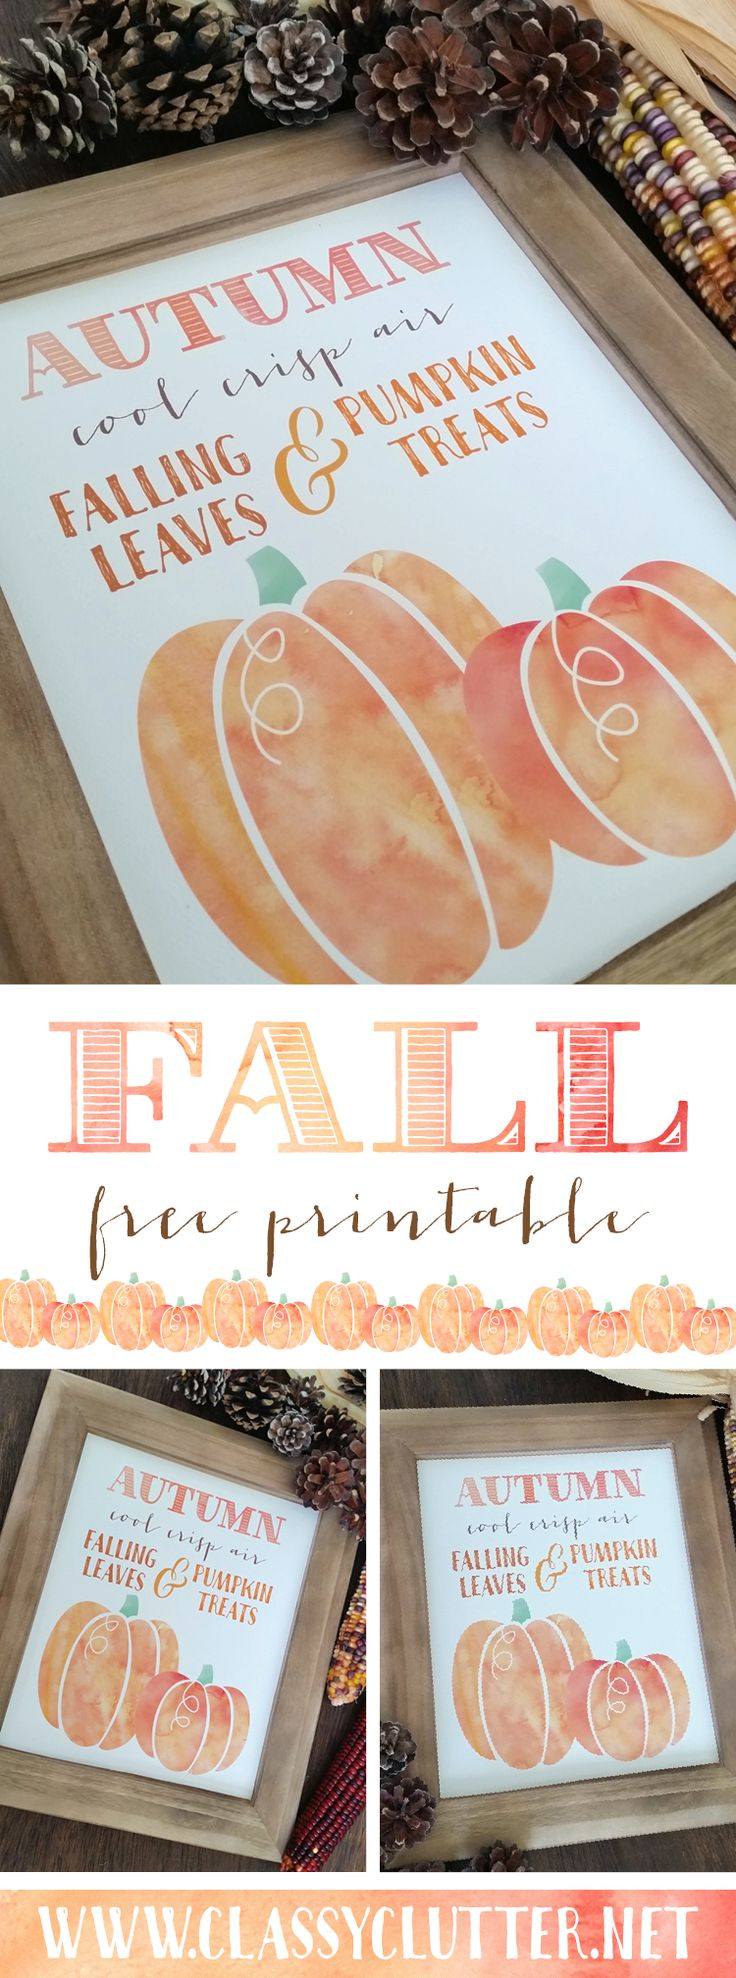 Fall Pumpkin Printable - Click to download yours for free! - www.classyclutter.net